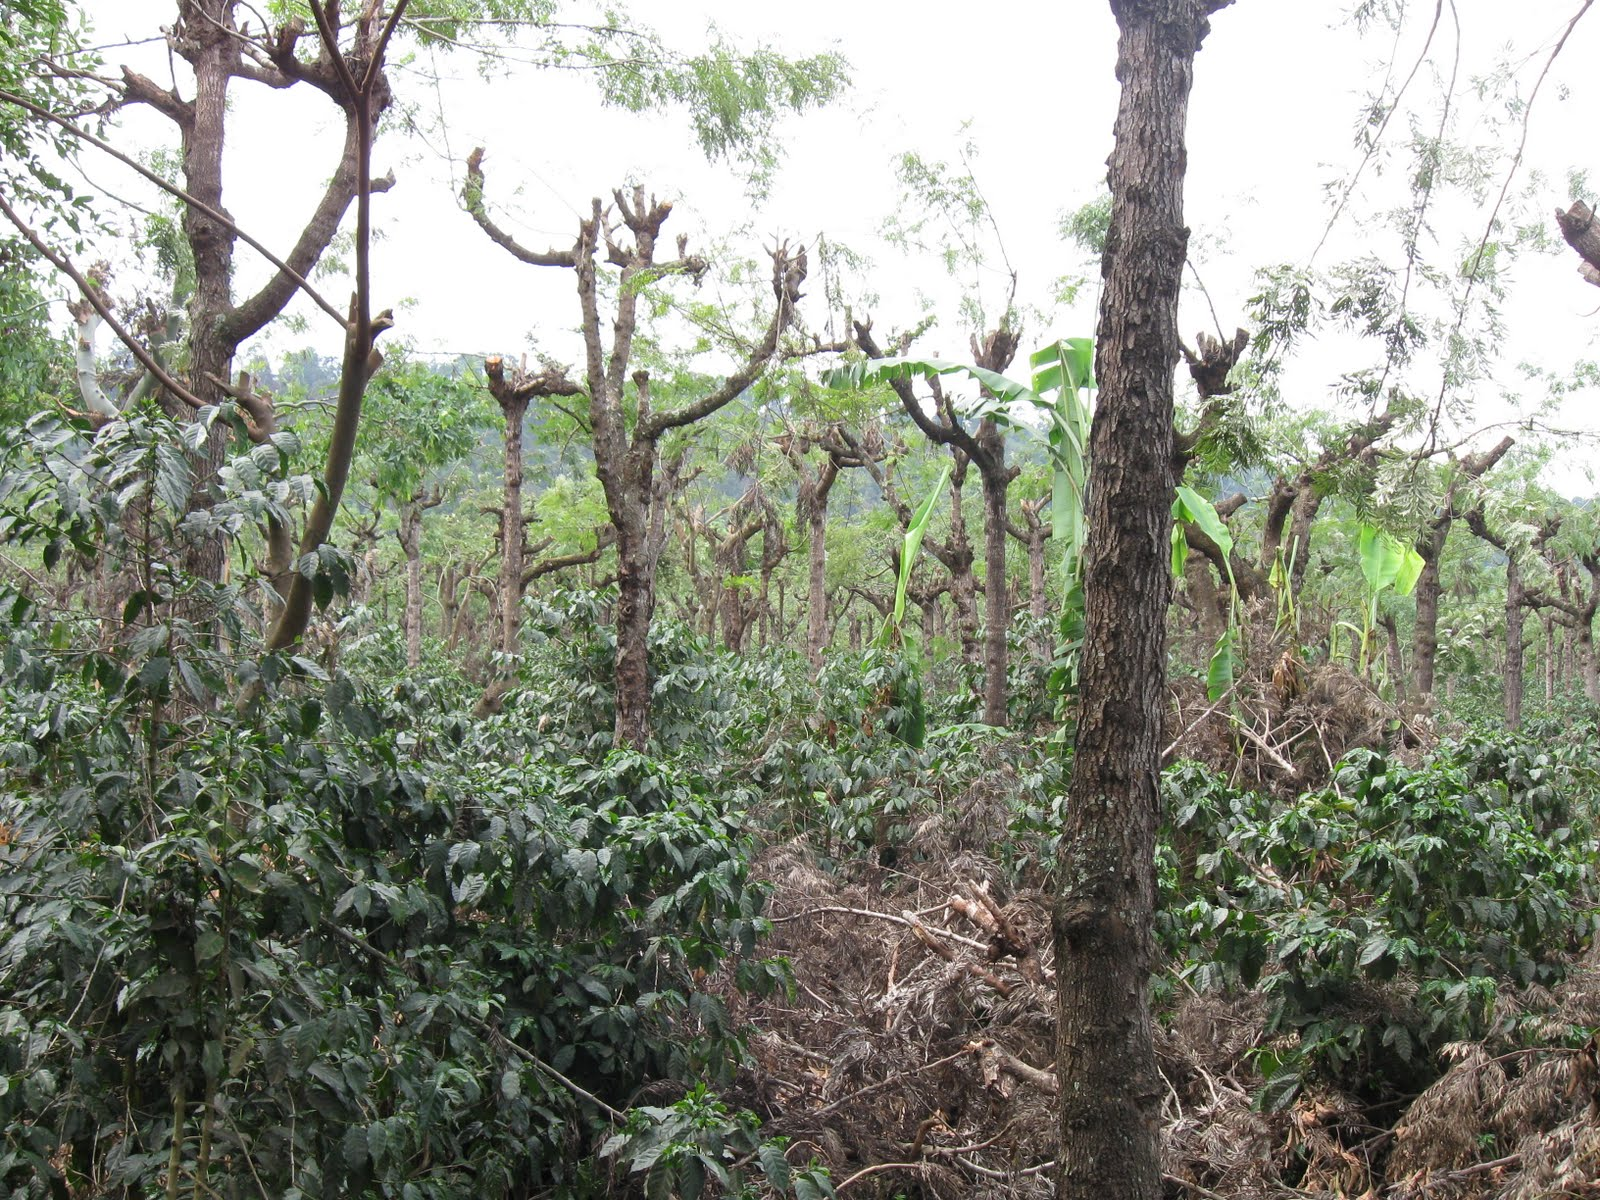 coffeeplantation.jpg - coffee plantation (the smaller coffee bushes grow in the shade of the trees)